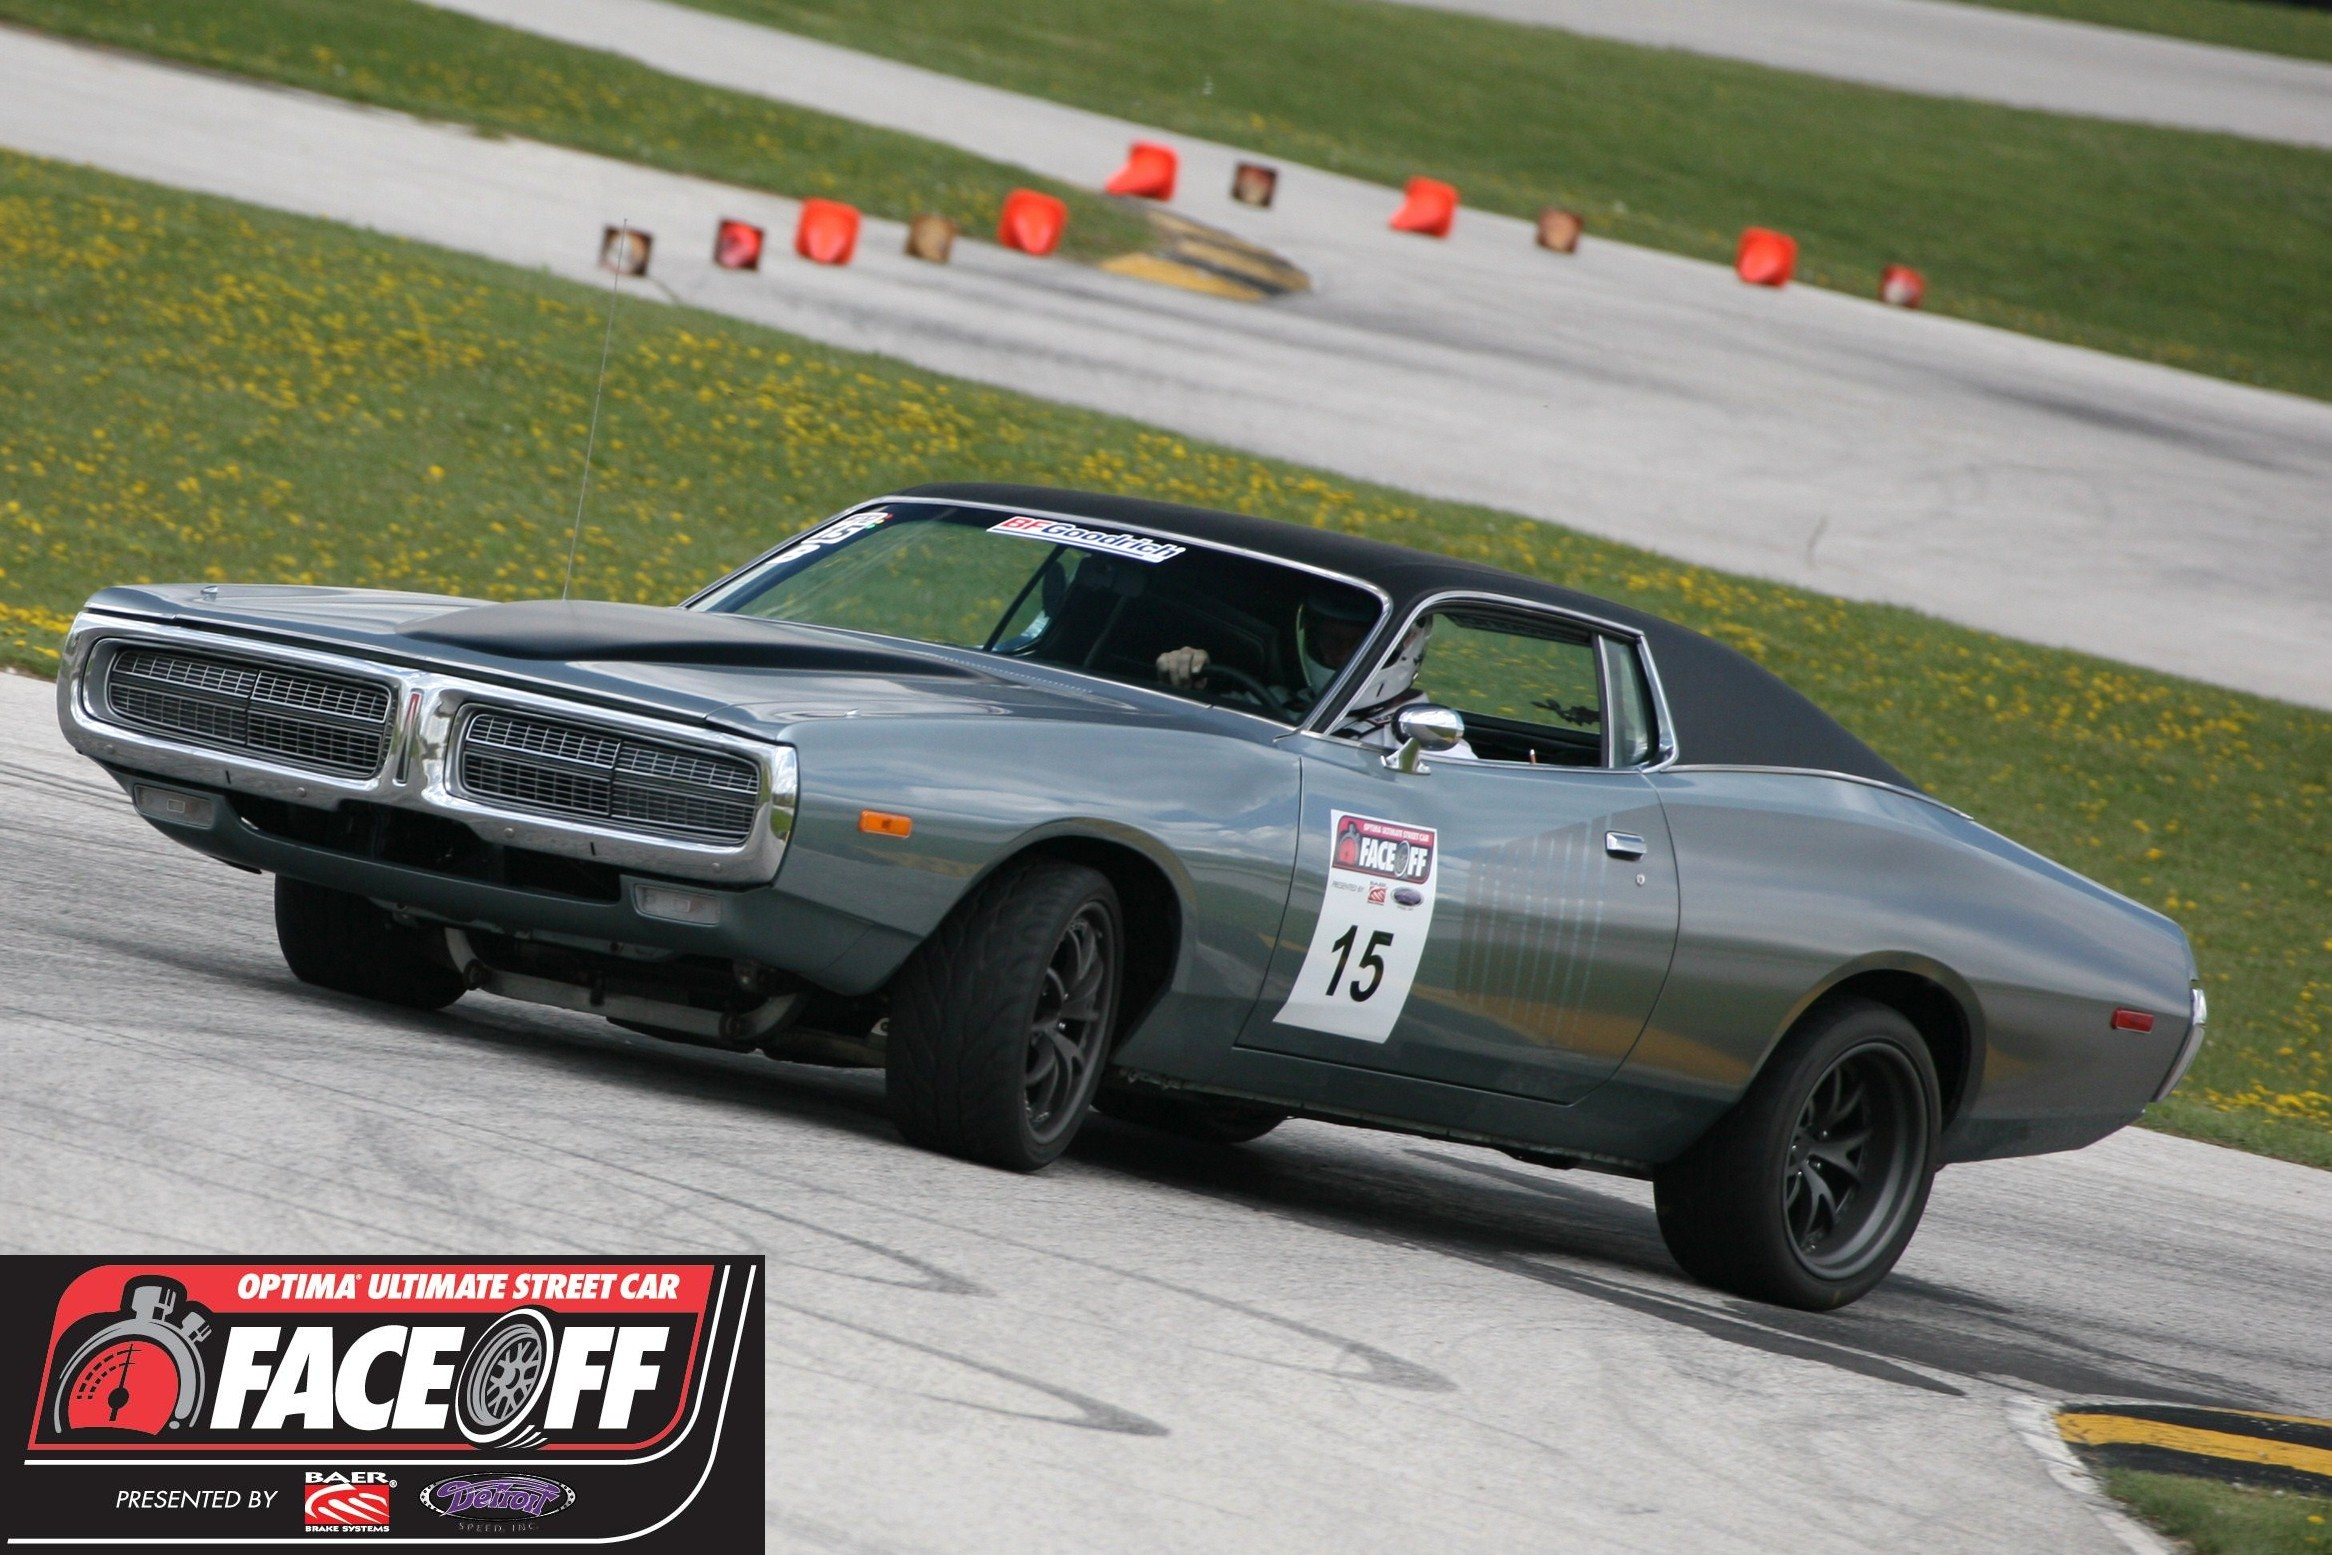 Bill-Howell-1972-Dodge-Charger-OPTIMA-Faceoff-Road-America_1